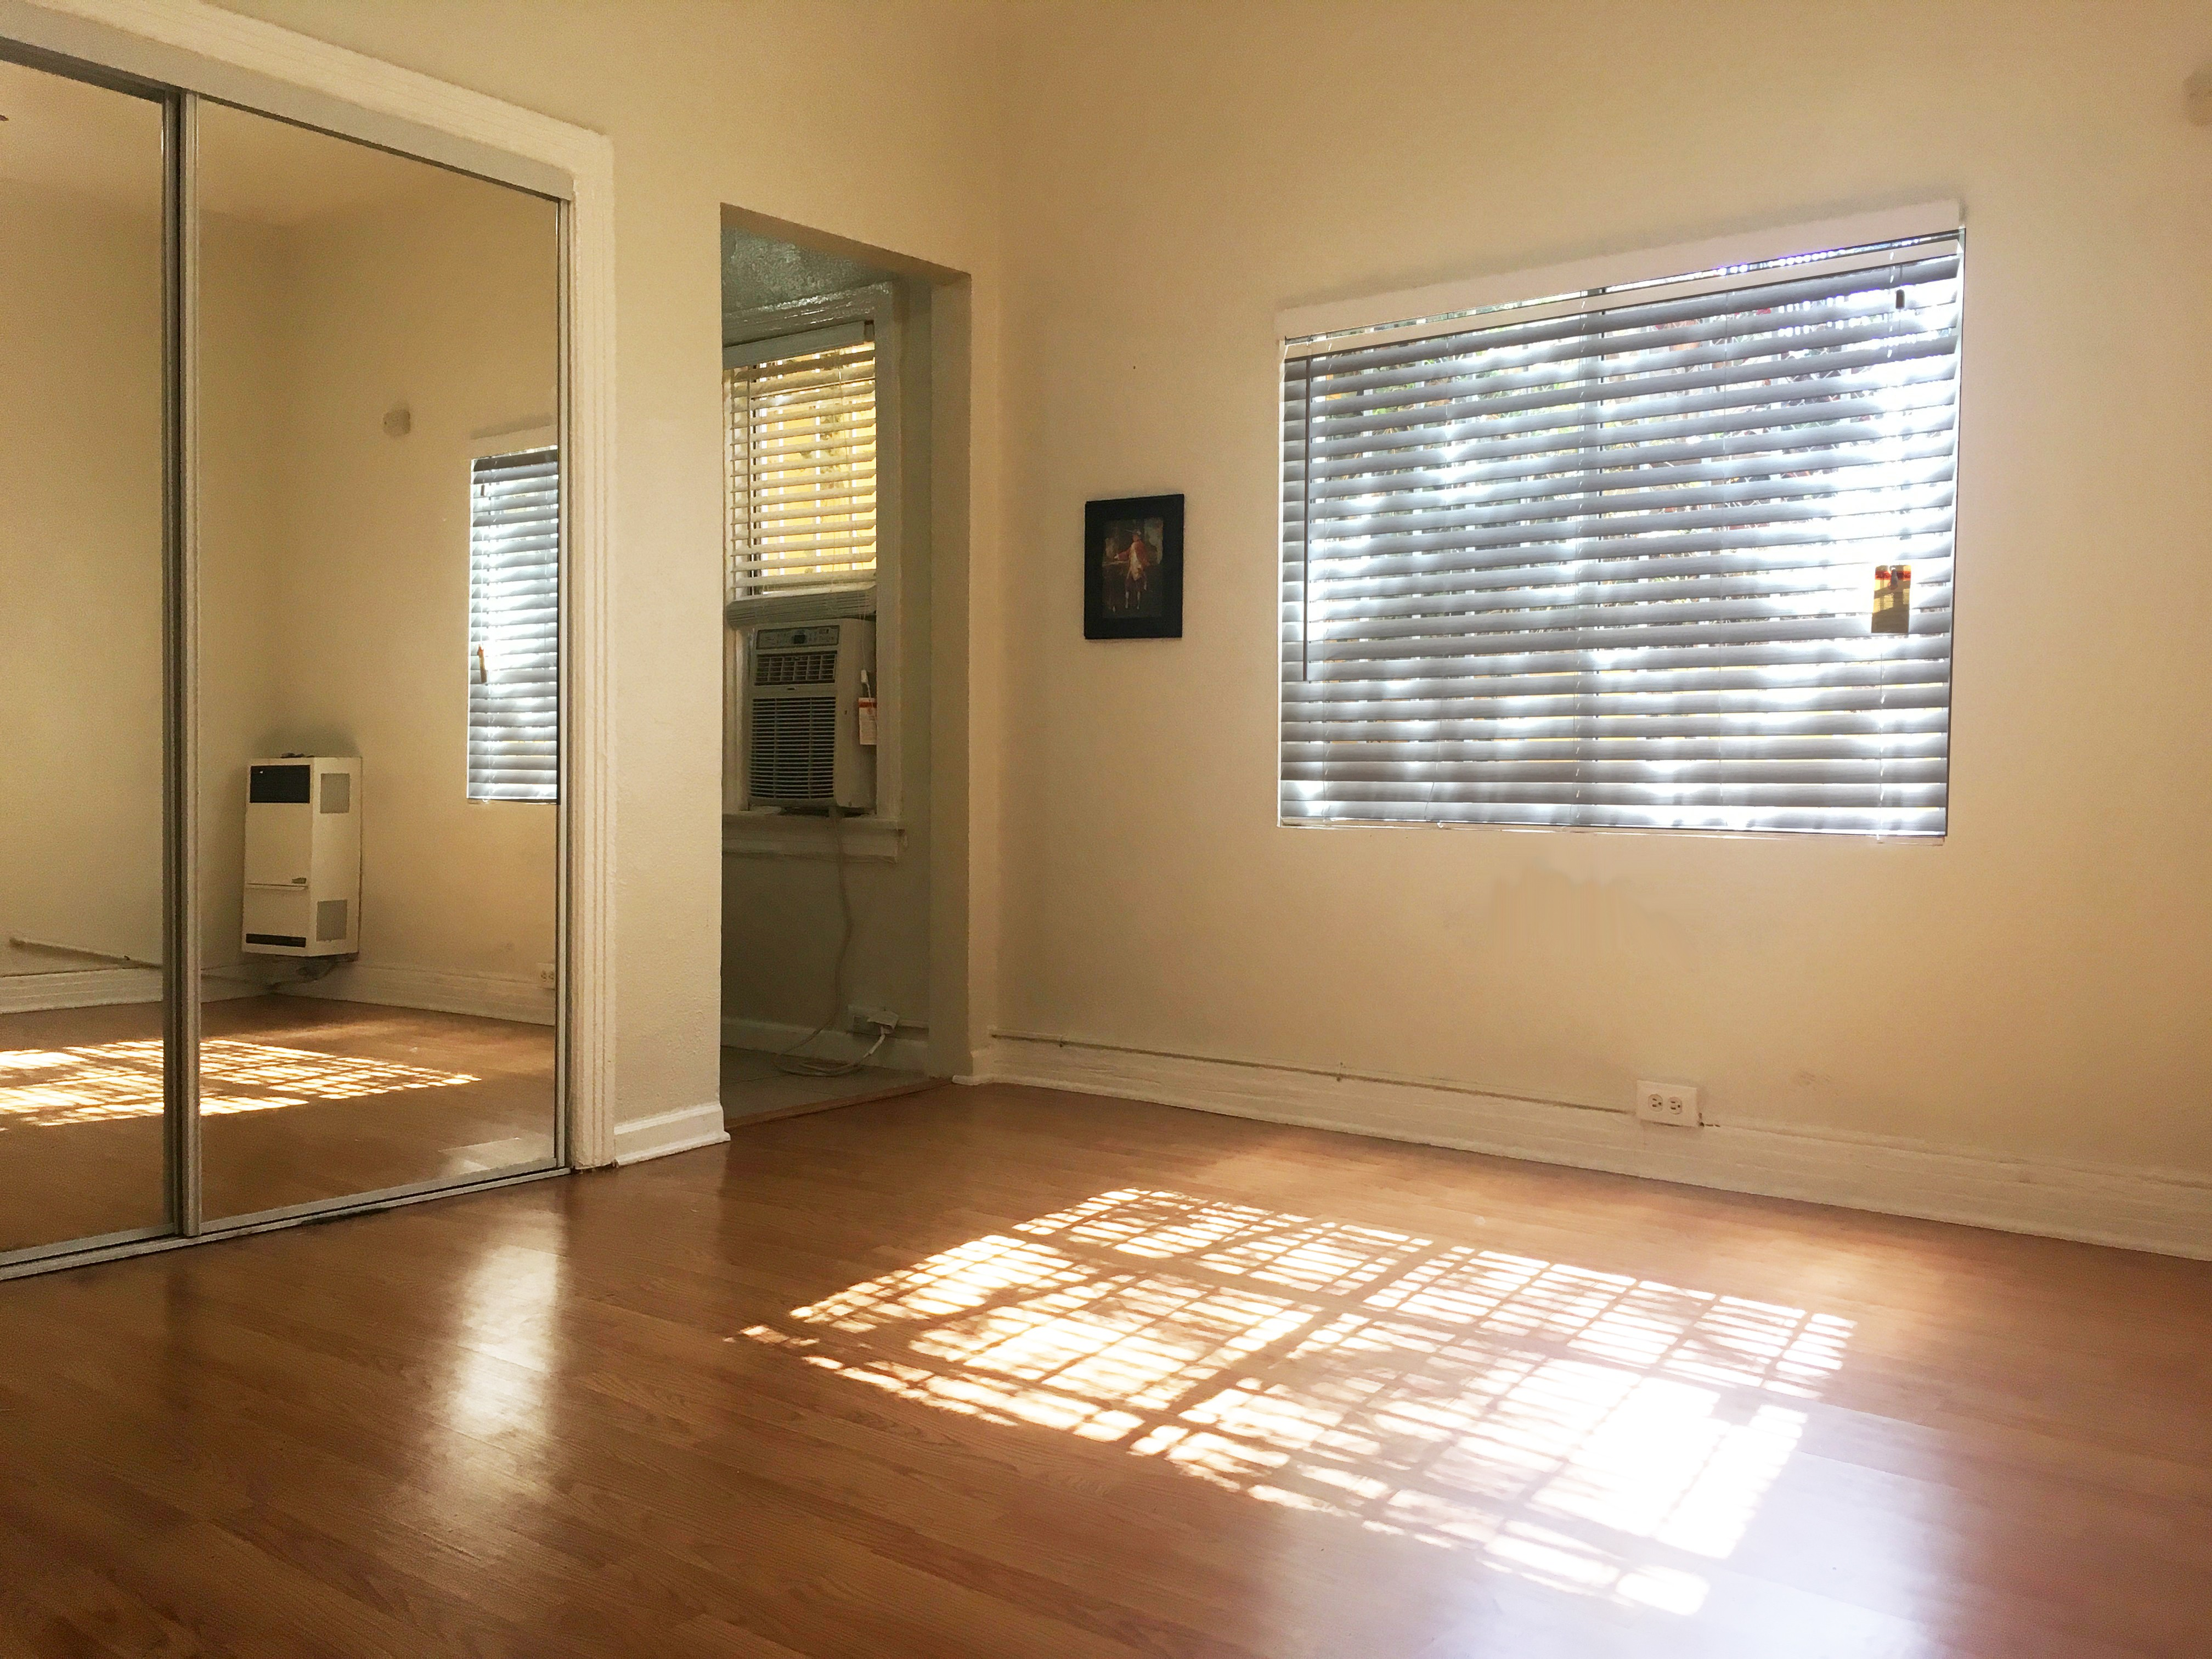 The Cheapest Apartment Rentals In Los Angeles, Right Now